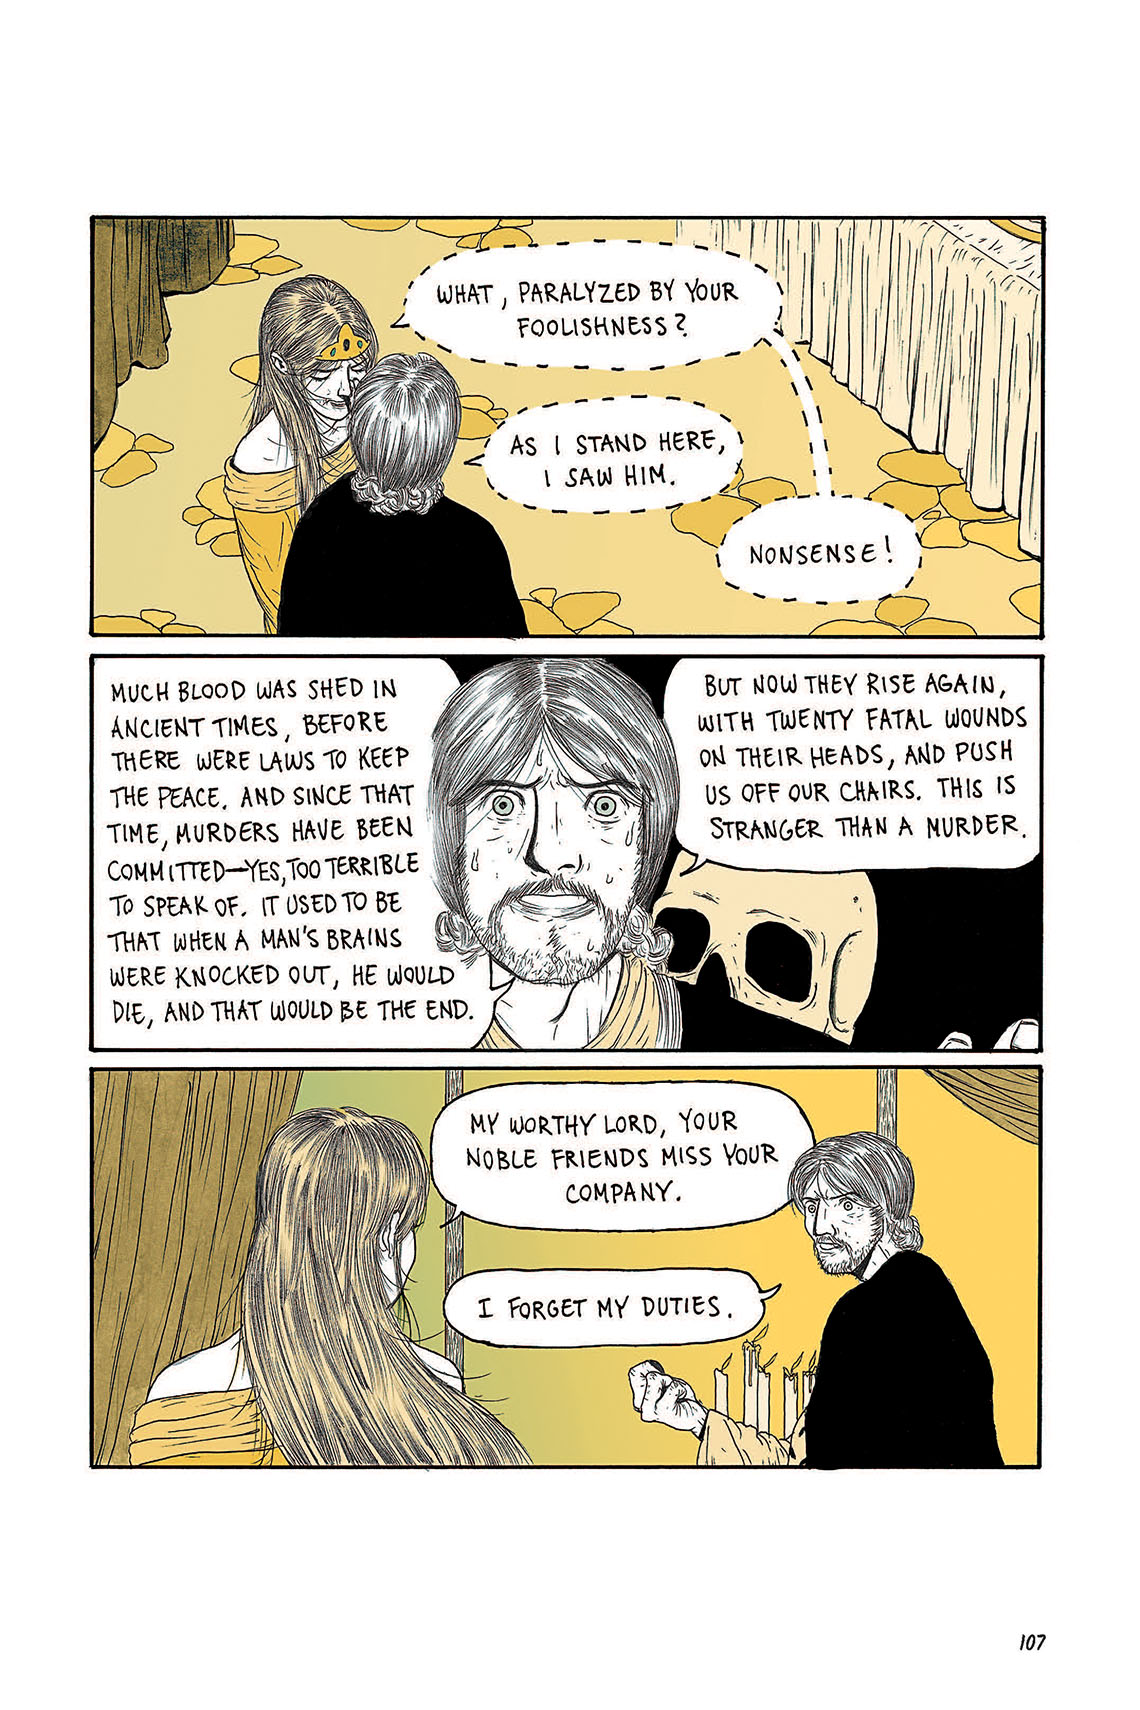 Macbeth Act 3 Scene 4 Page 107 Graphic Novel Sparknotes Sparknote 6